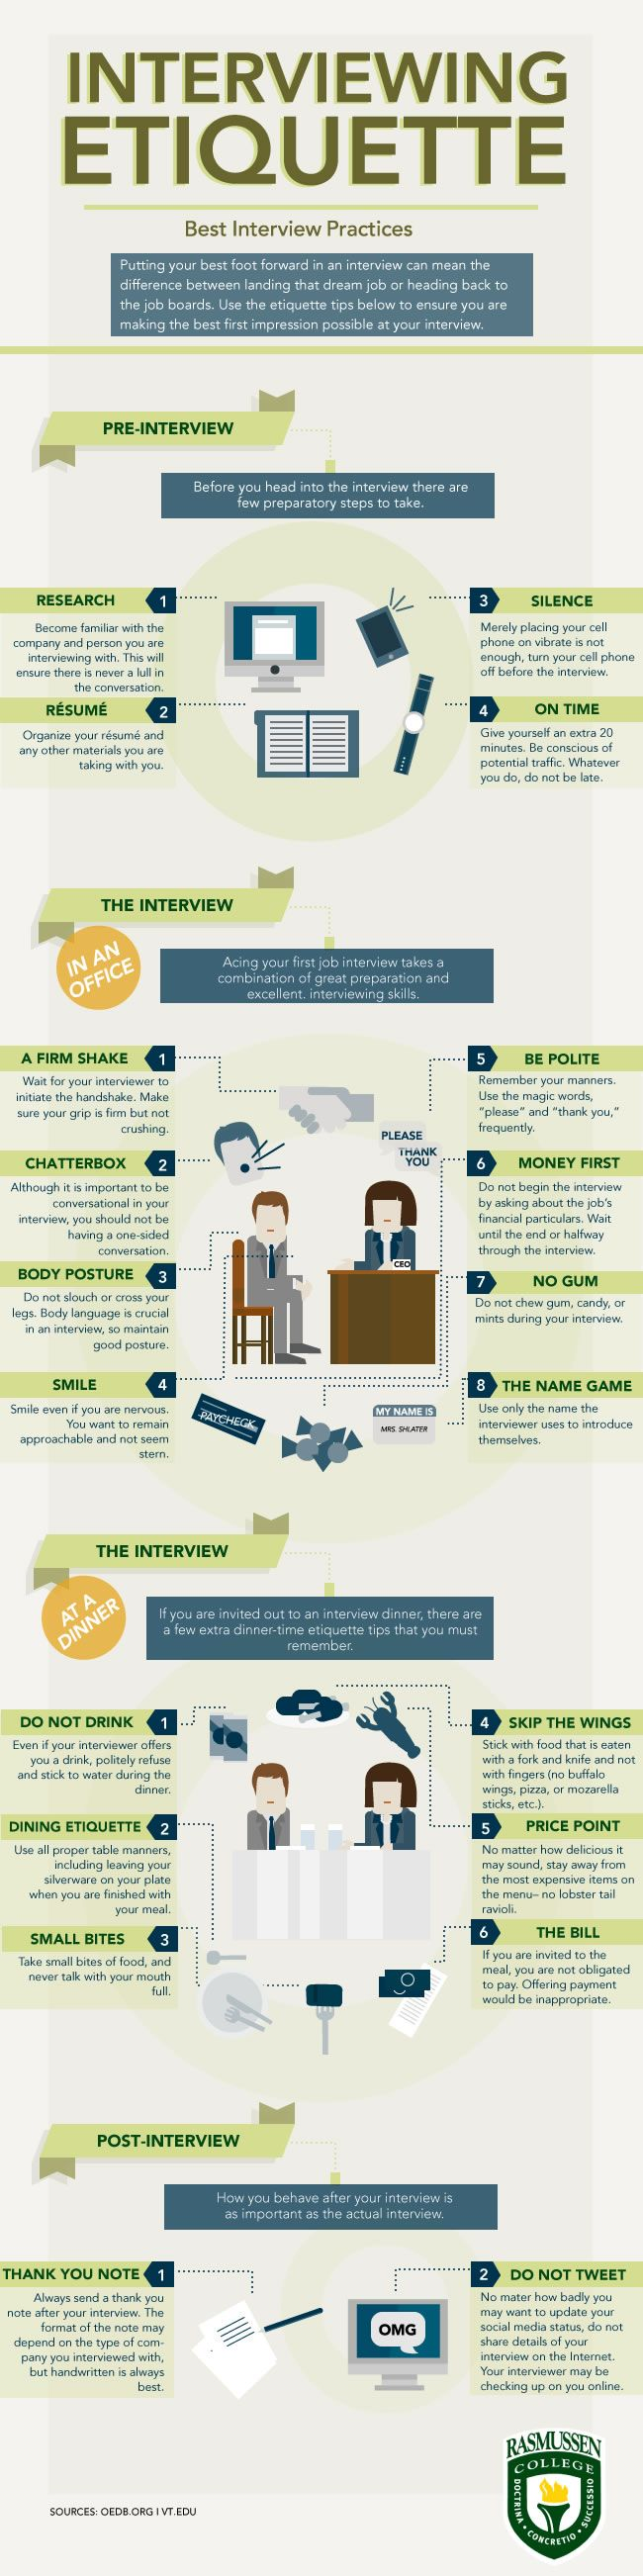 Tips for Interviews: Interviewing Etiquette The first step to career victory is to prepare for an interview. Use these etiquette tips for interviews to ensure you are making the best impression possible to your prospective employer.  This infographic is brought to you by Rasmussen College - Career Services team.   For more information on Rasmussen College visit:  http://www.rasmussen.edu/